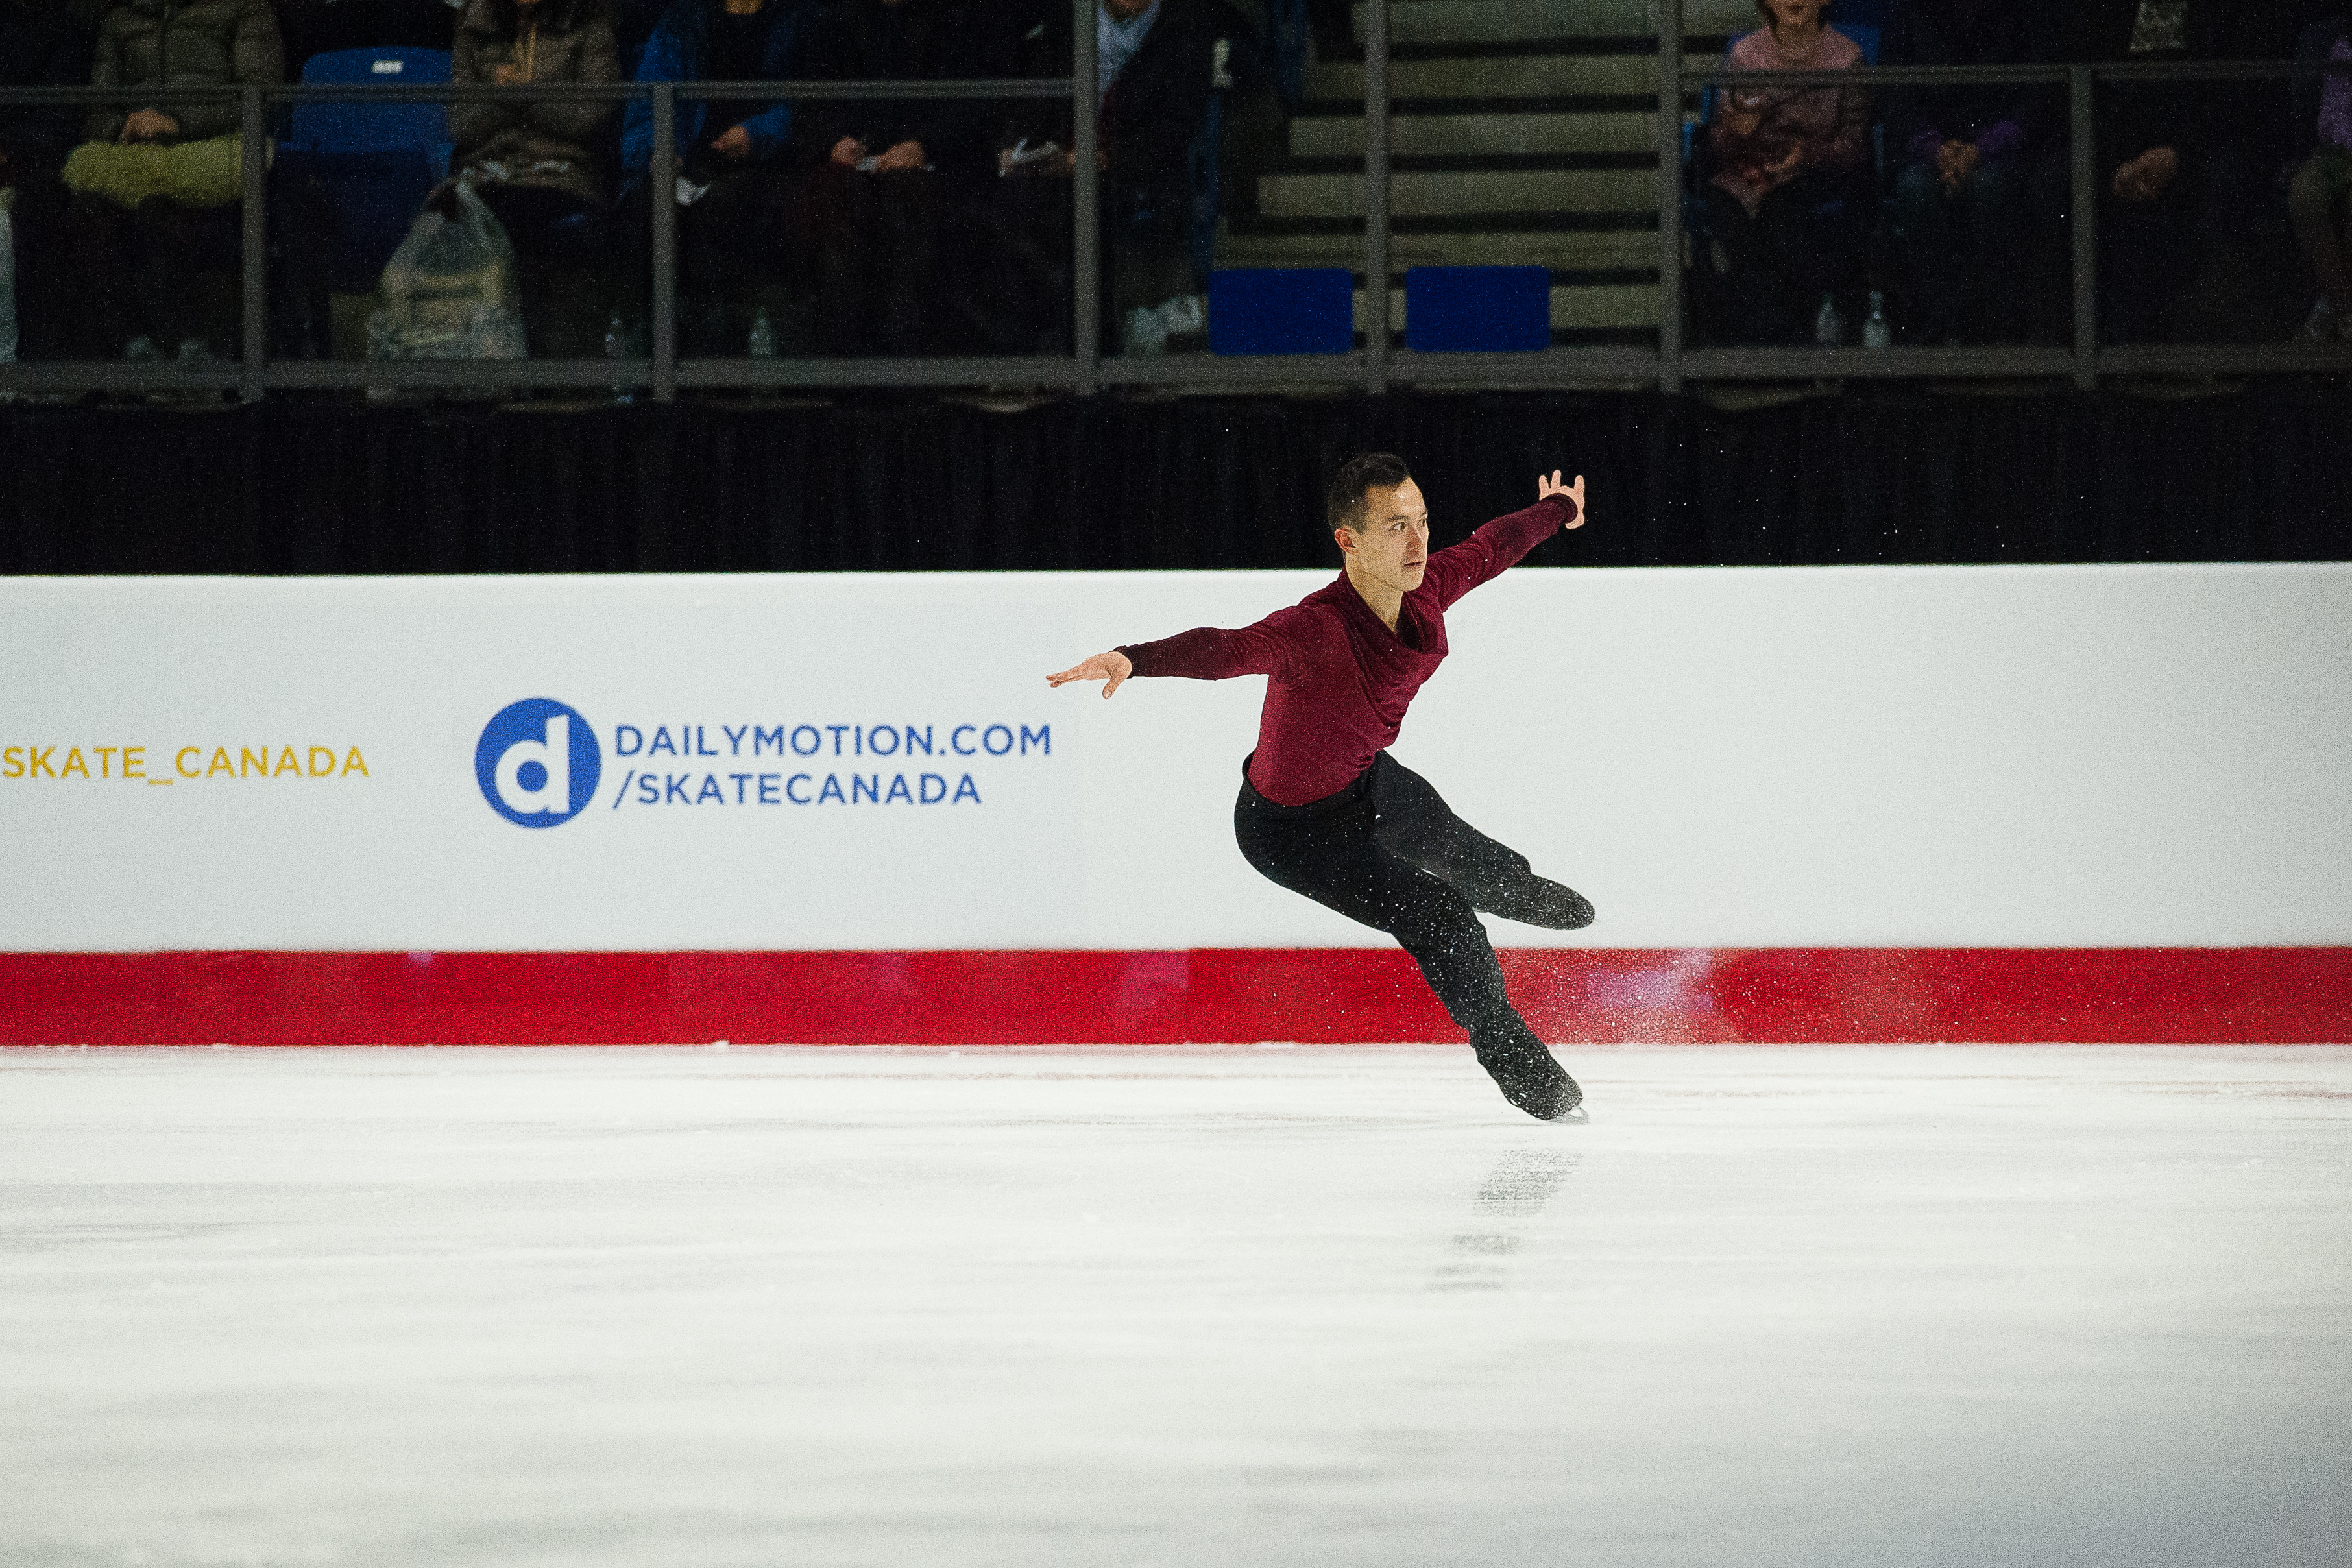 Patrick Chan lands a jump in his free program.